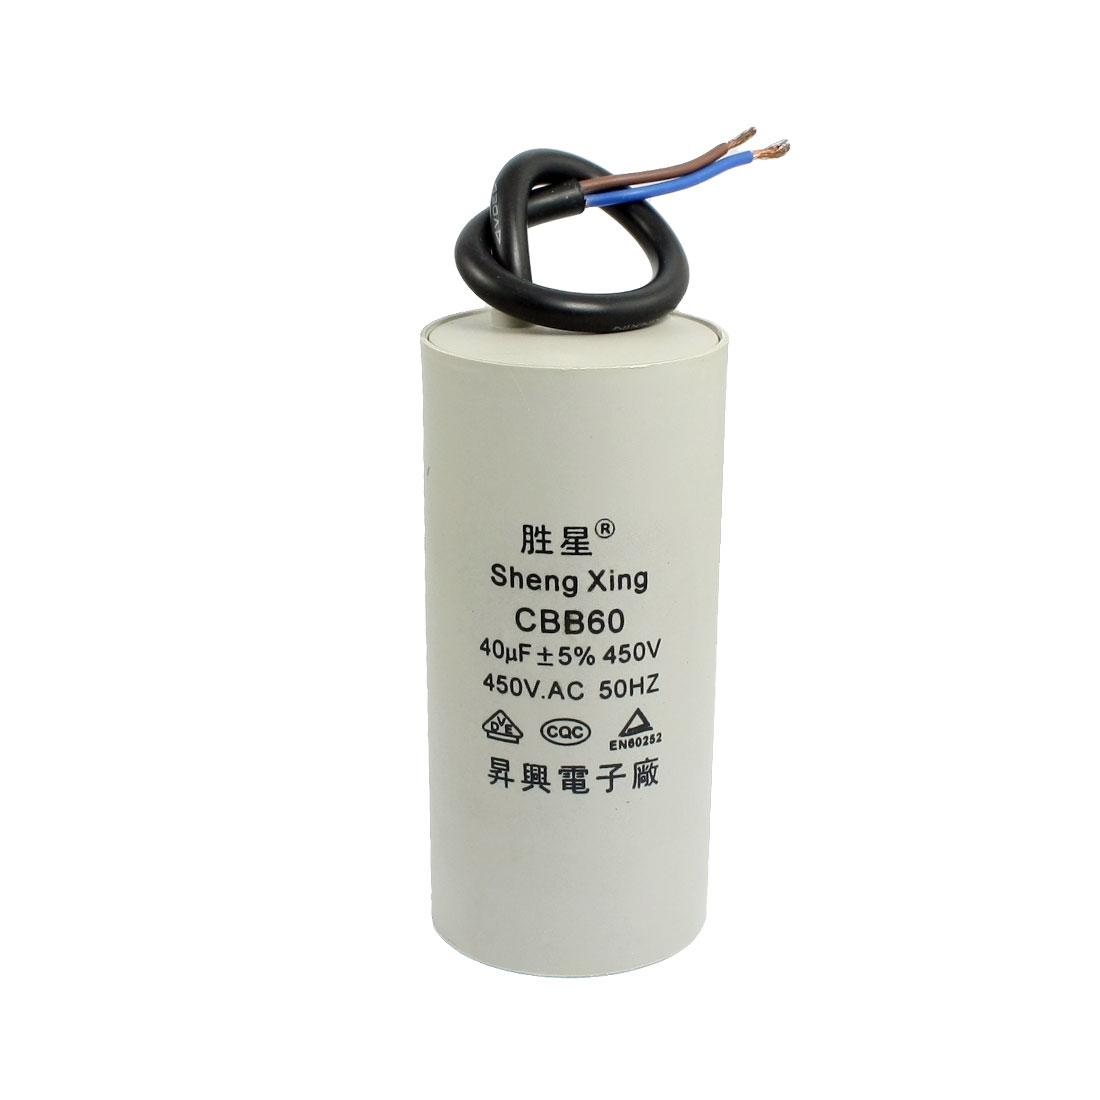 AC 450V 50Hz 40uF Washing Machine Polypropylene Film Capacitor